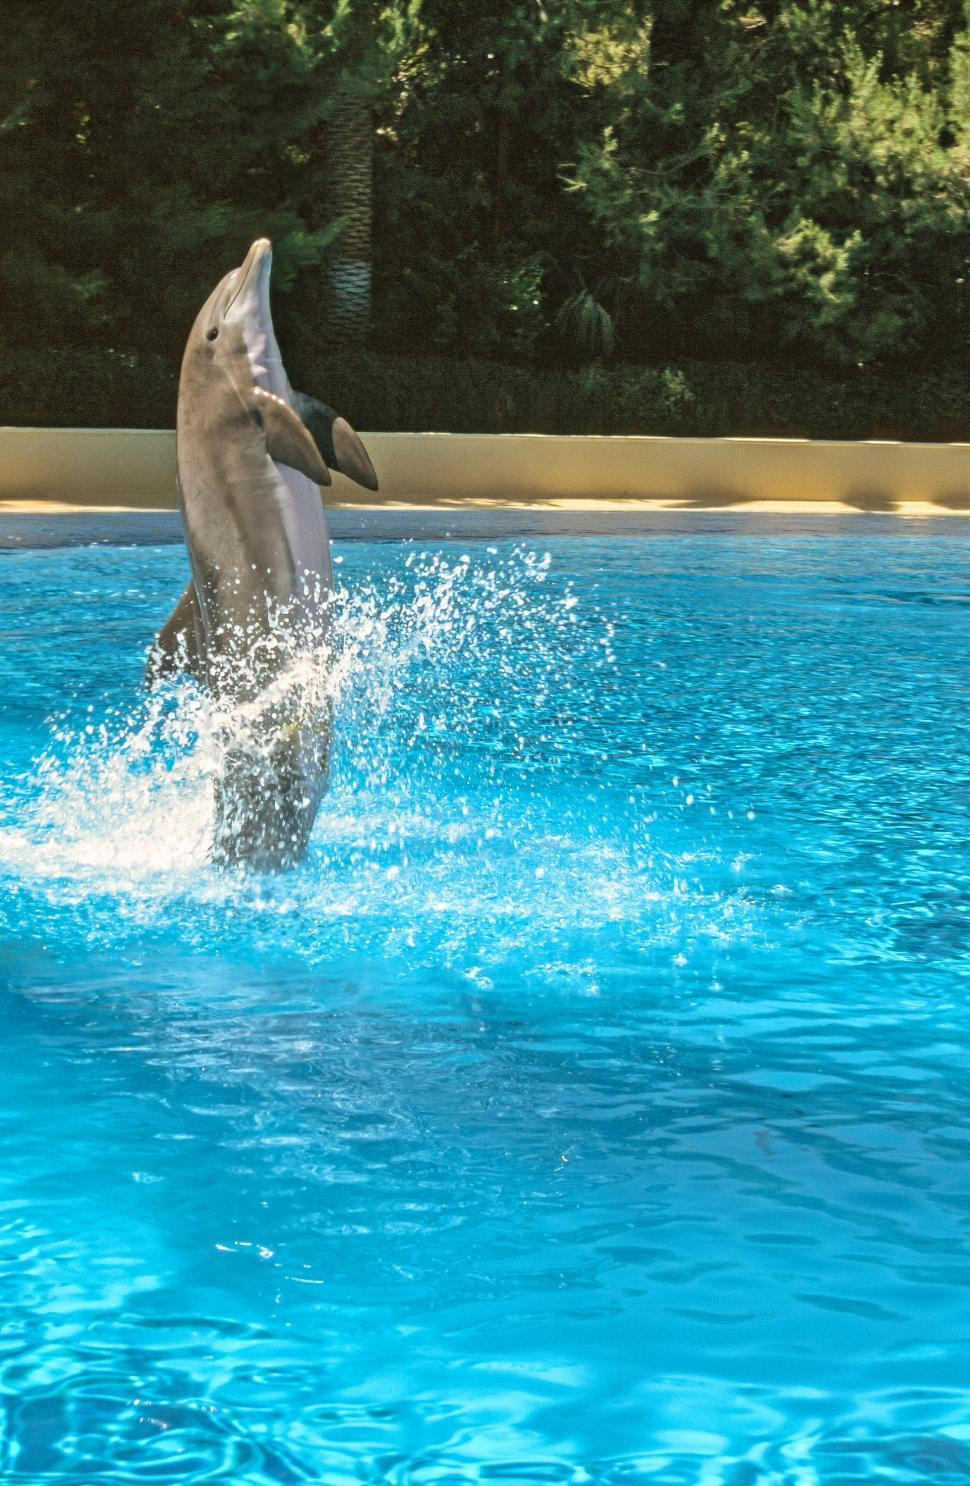 Download Free Stock Photo of Bottlenose dolphin